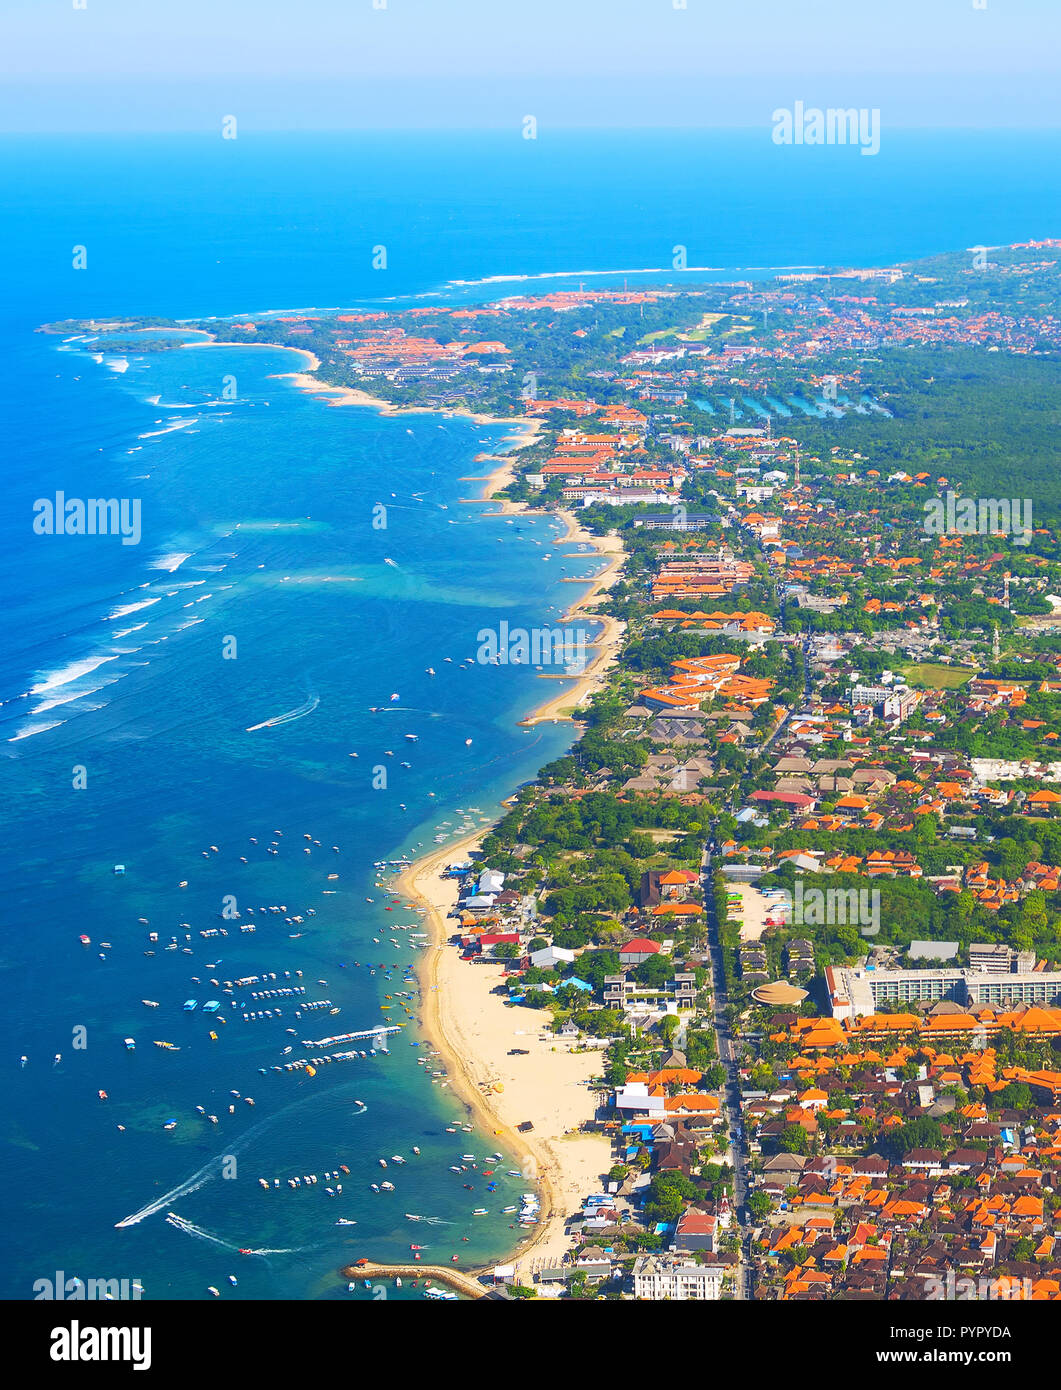 Aerial View Of Bali Island From An Airplane Indonesia Stock Photo